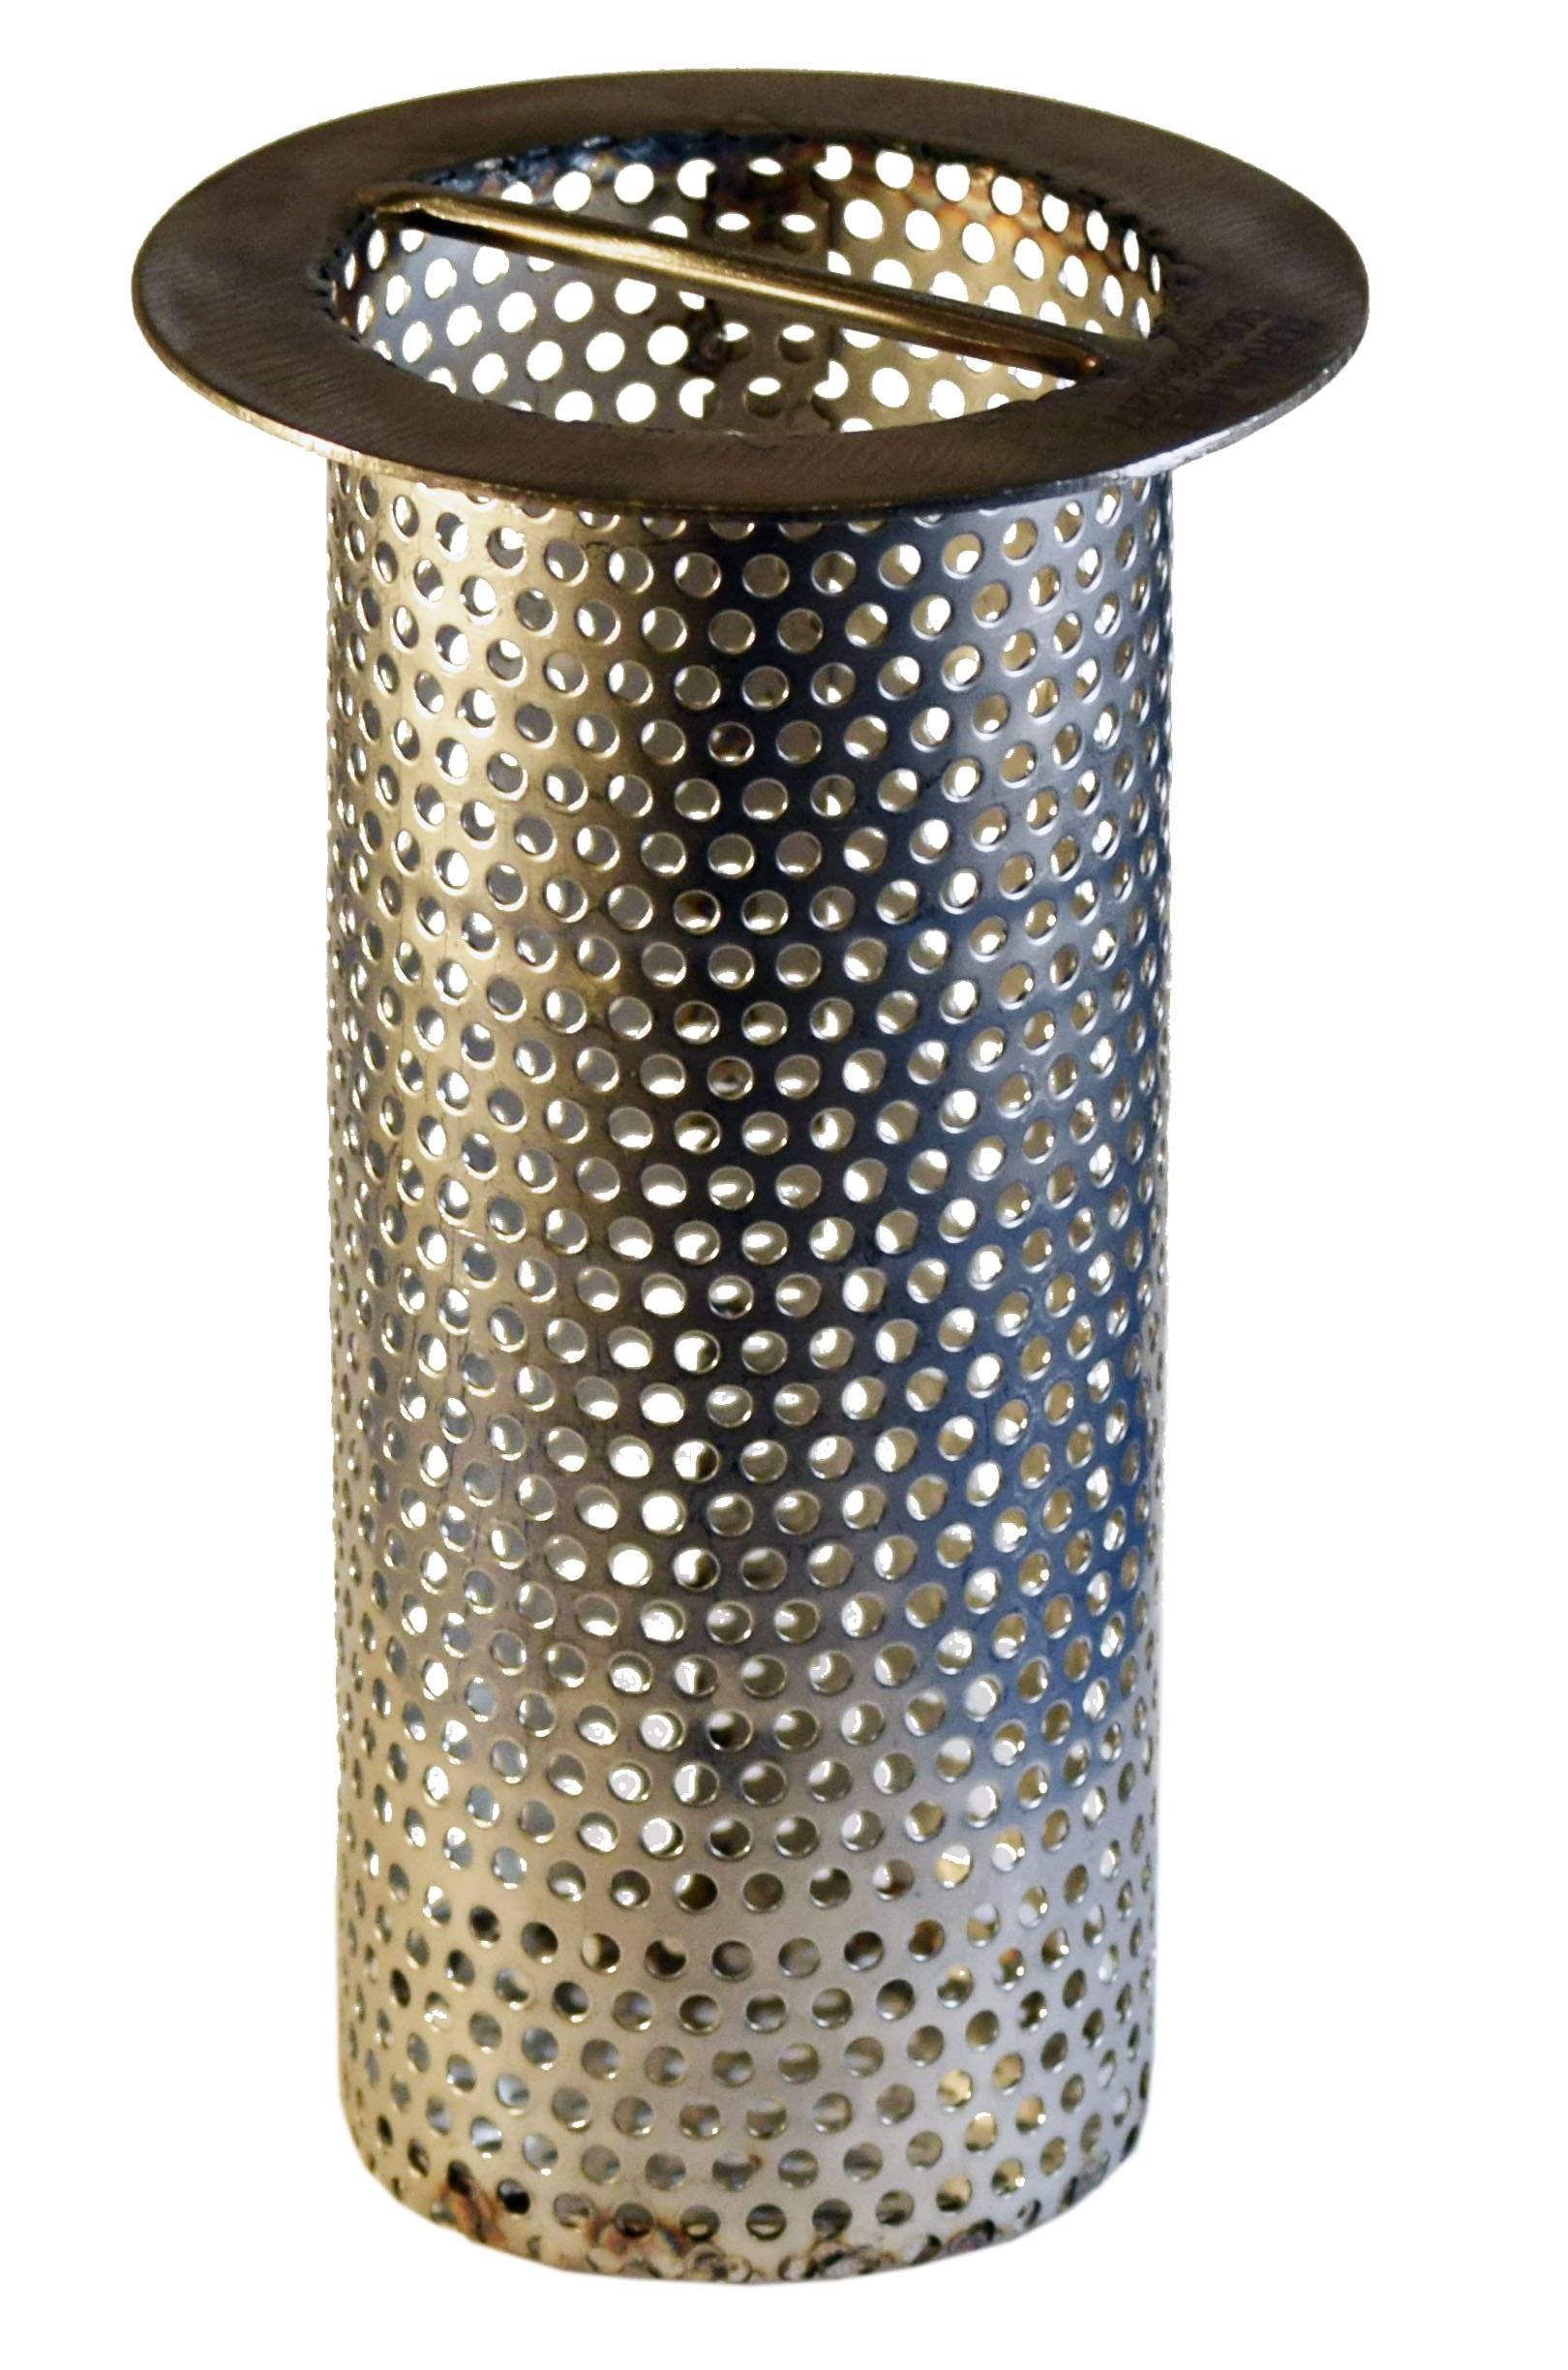 3'' Commercial Floor Drain Strainer, Perforated Stainless Steel, 6'' tall